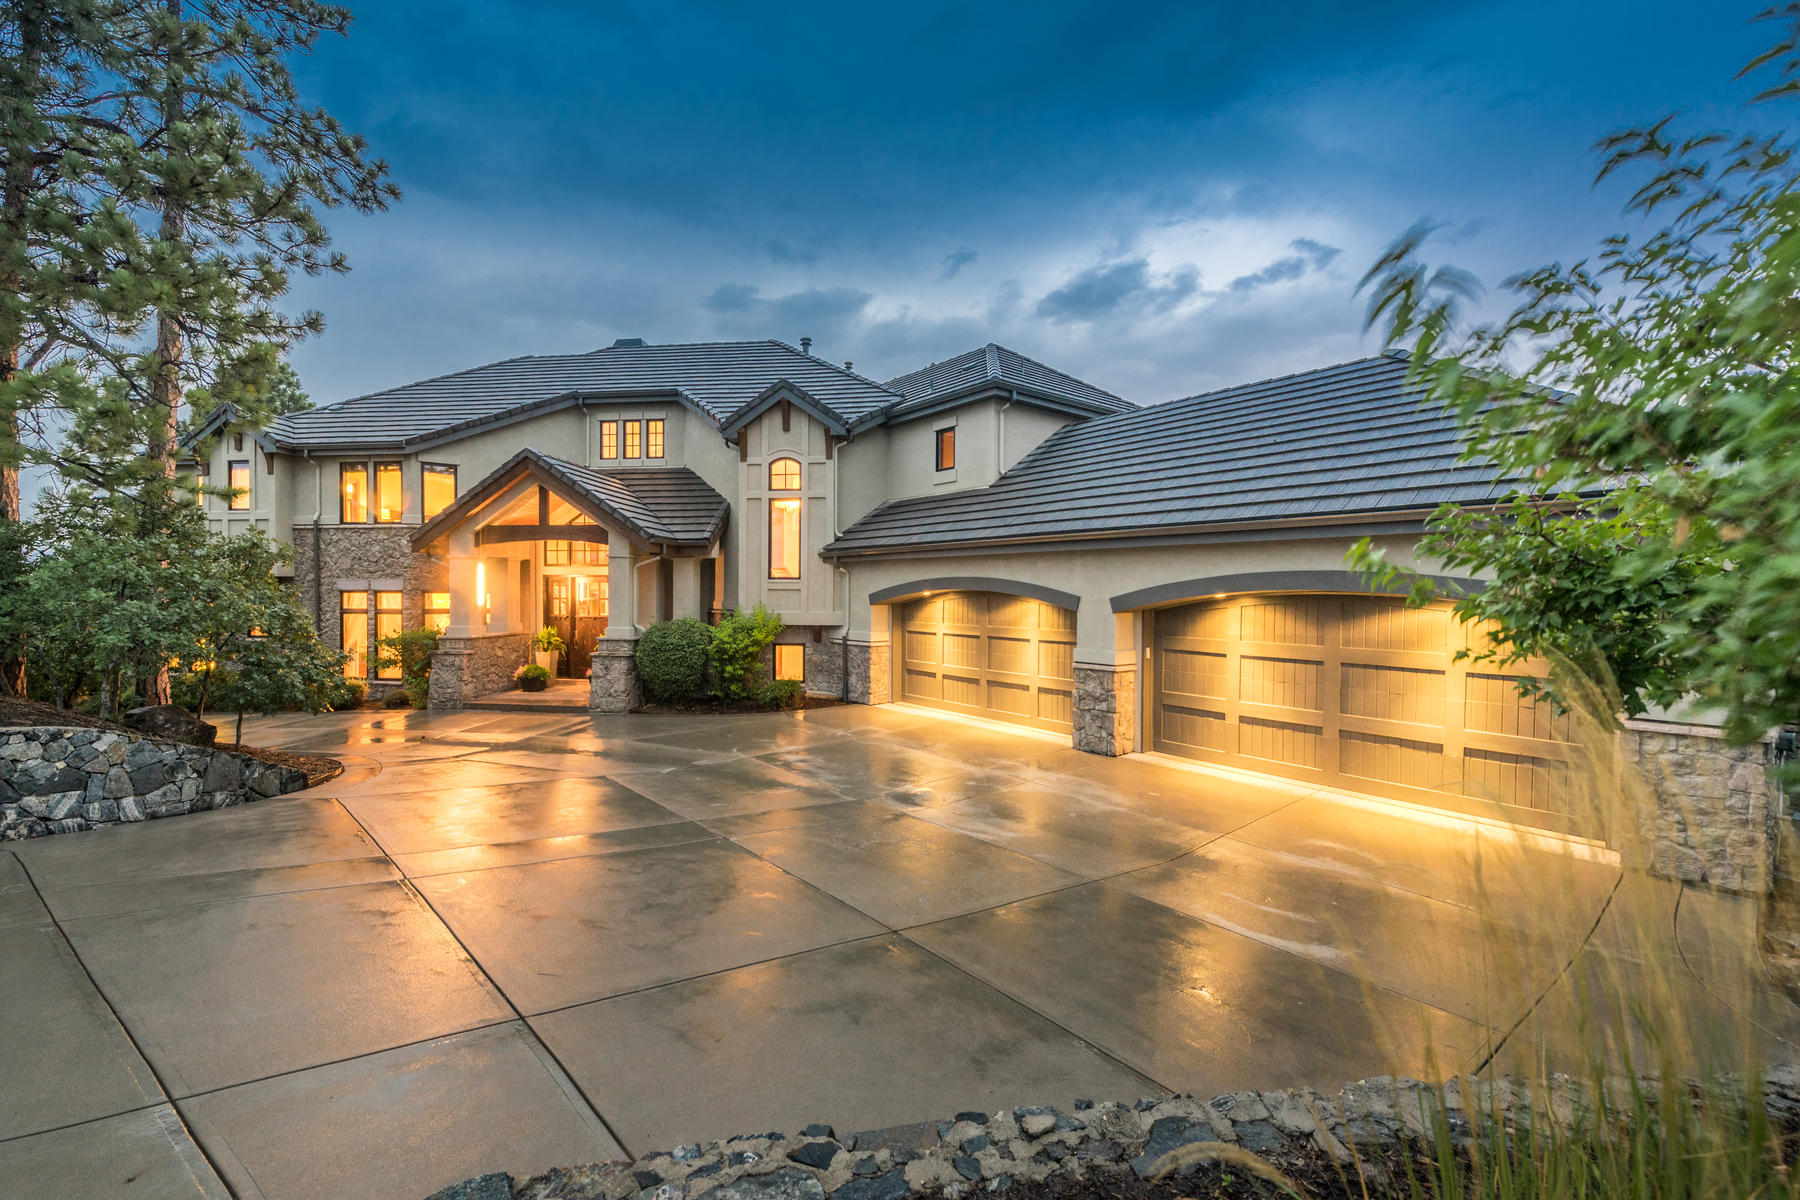 Single Family Homes for Active at 657 Ruby Trust Drive, Castle Rock, Co, 80108 657 Ruby Trust Drive Castle Rock, Colorado 80108 United States